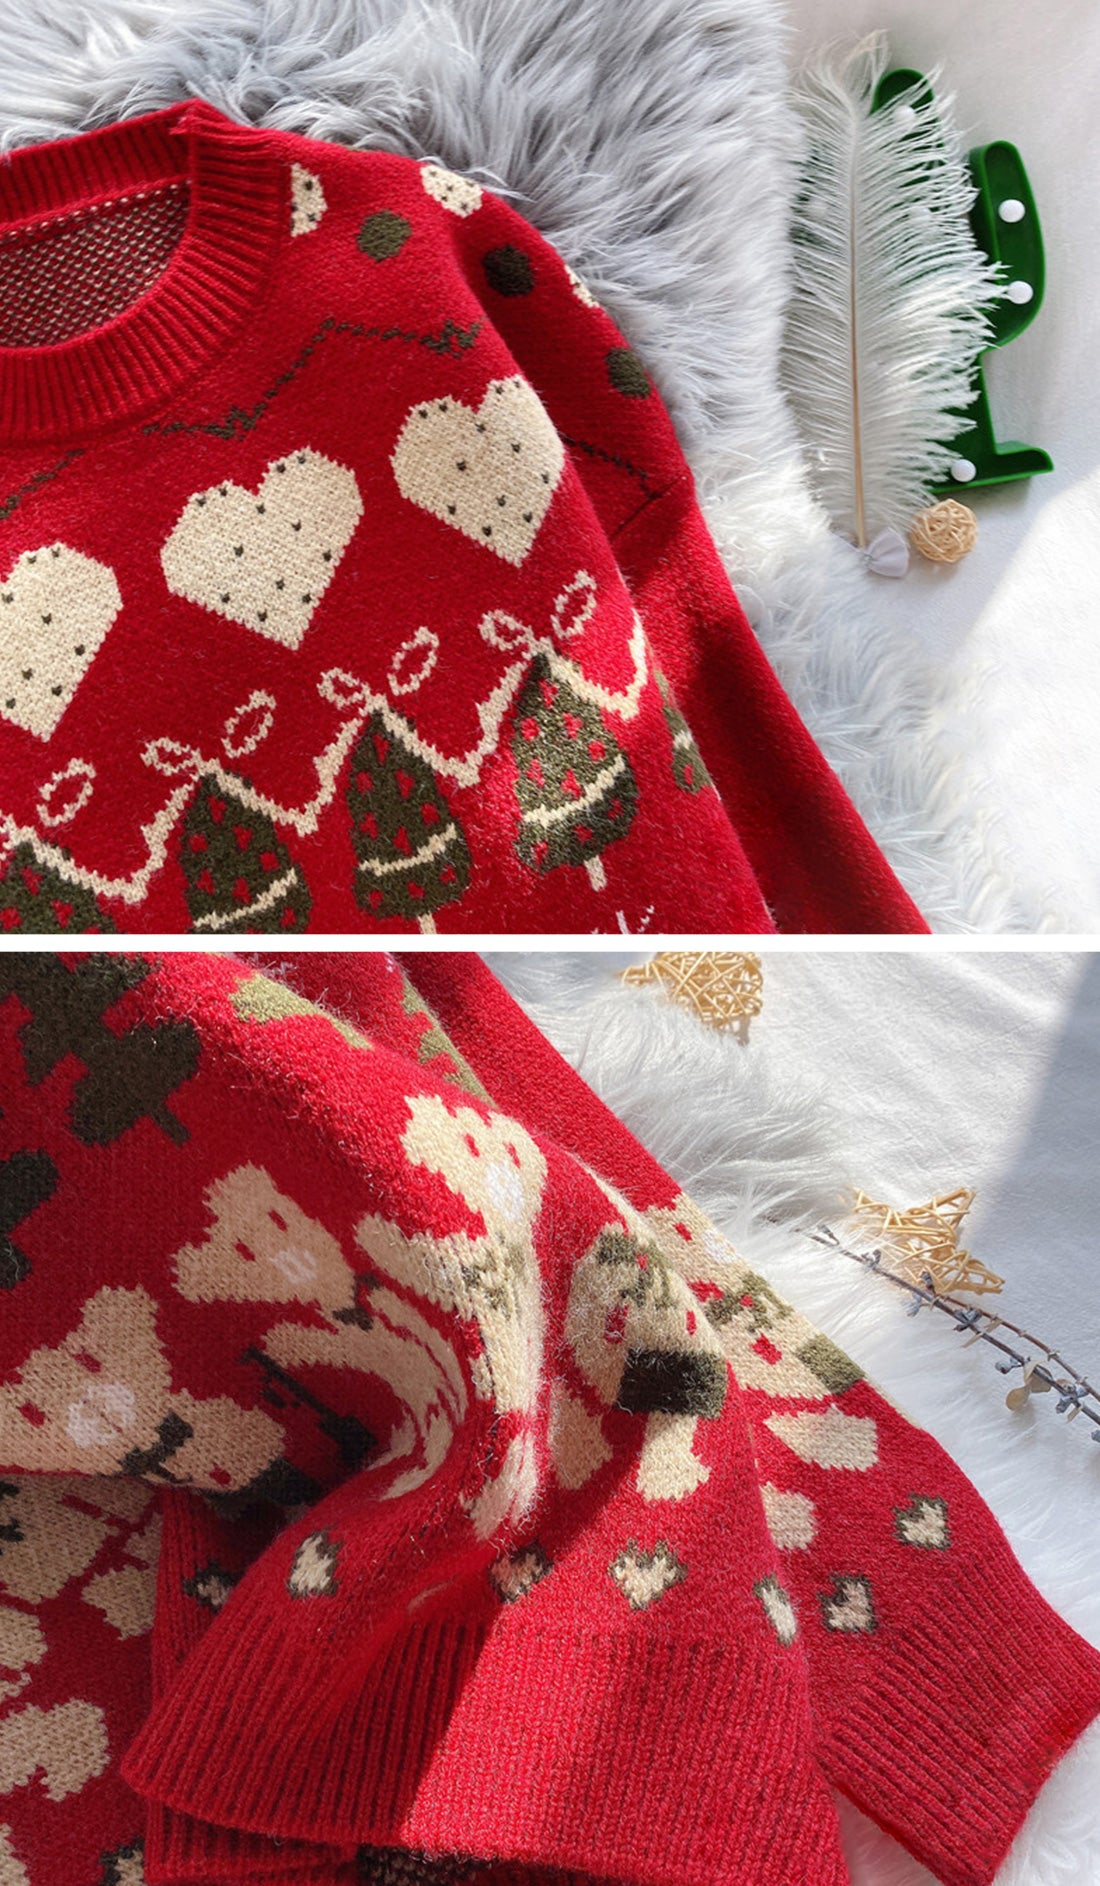 Time For A Beer Christmas Sweater Details 1